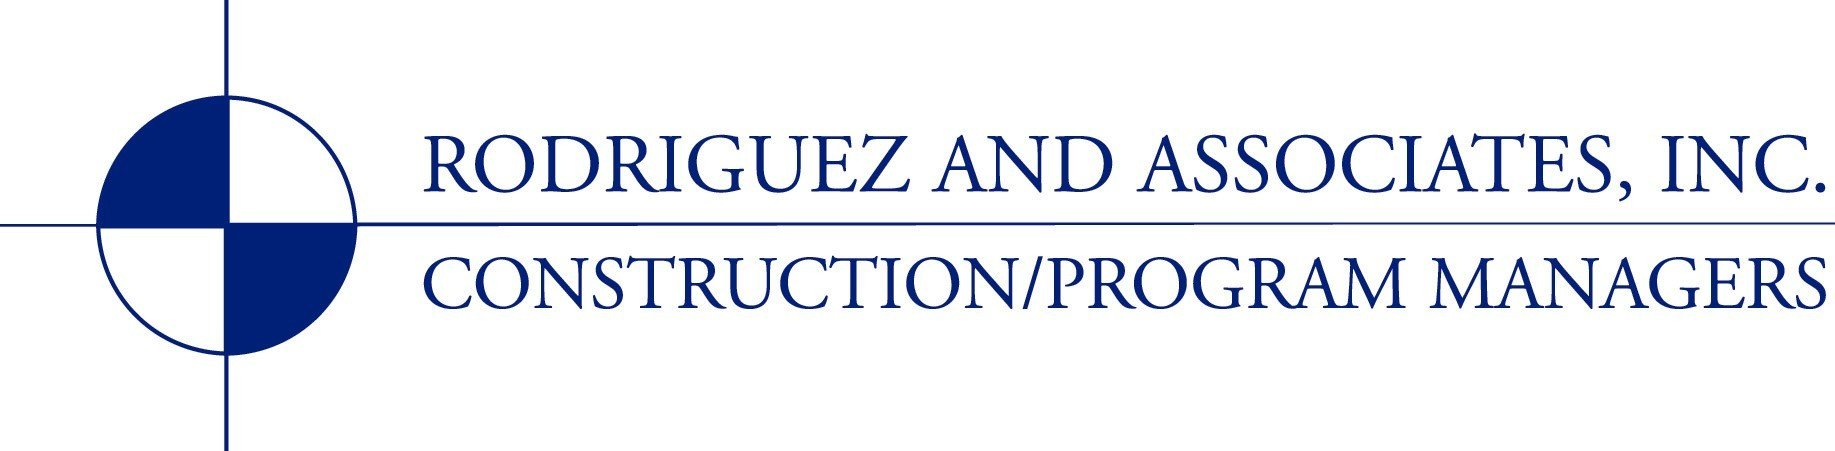 Rodriguez and Associates, Inc